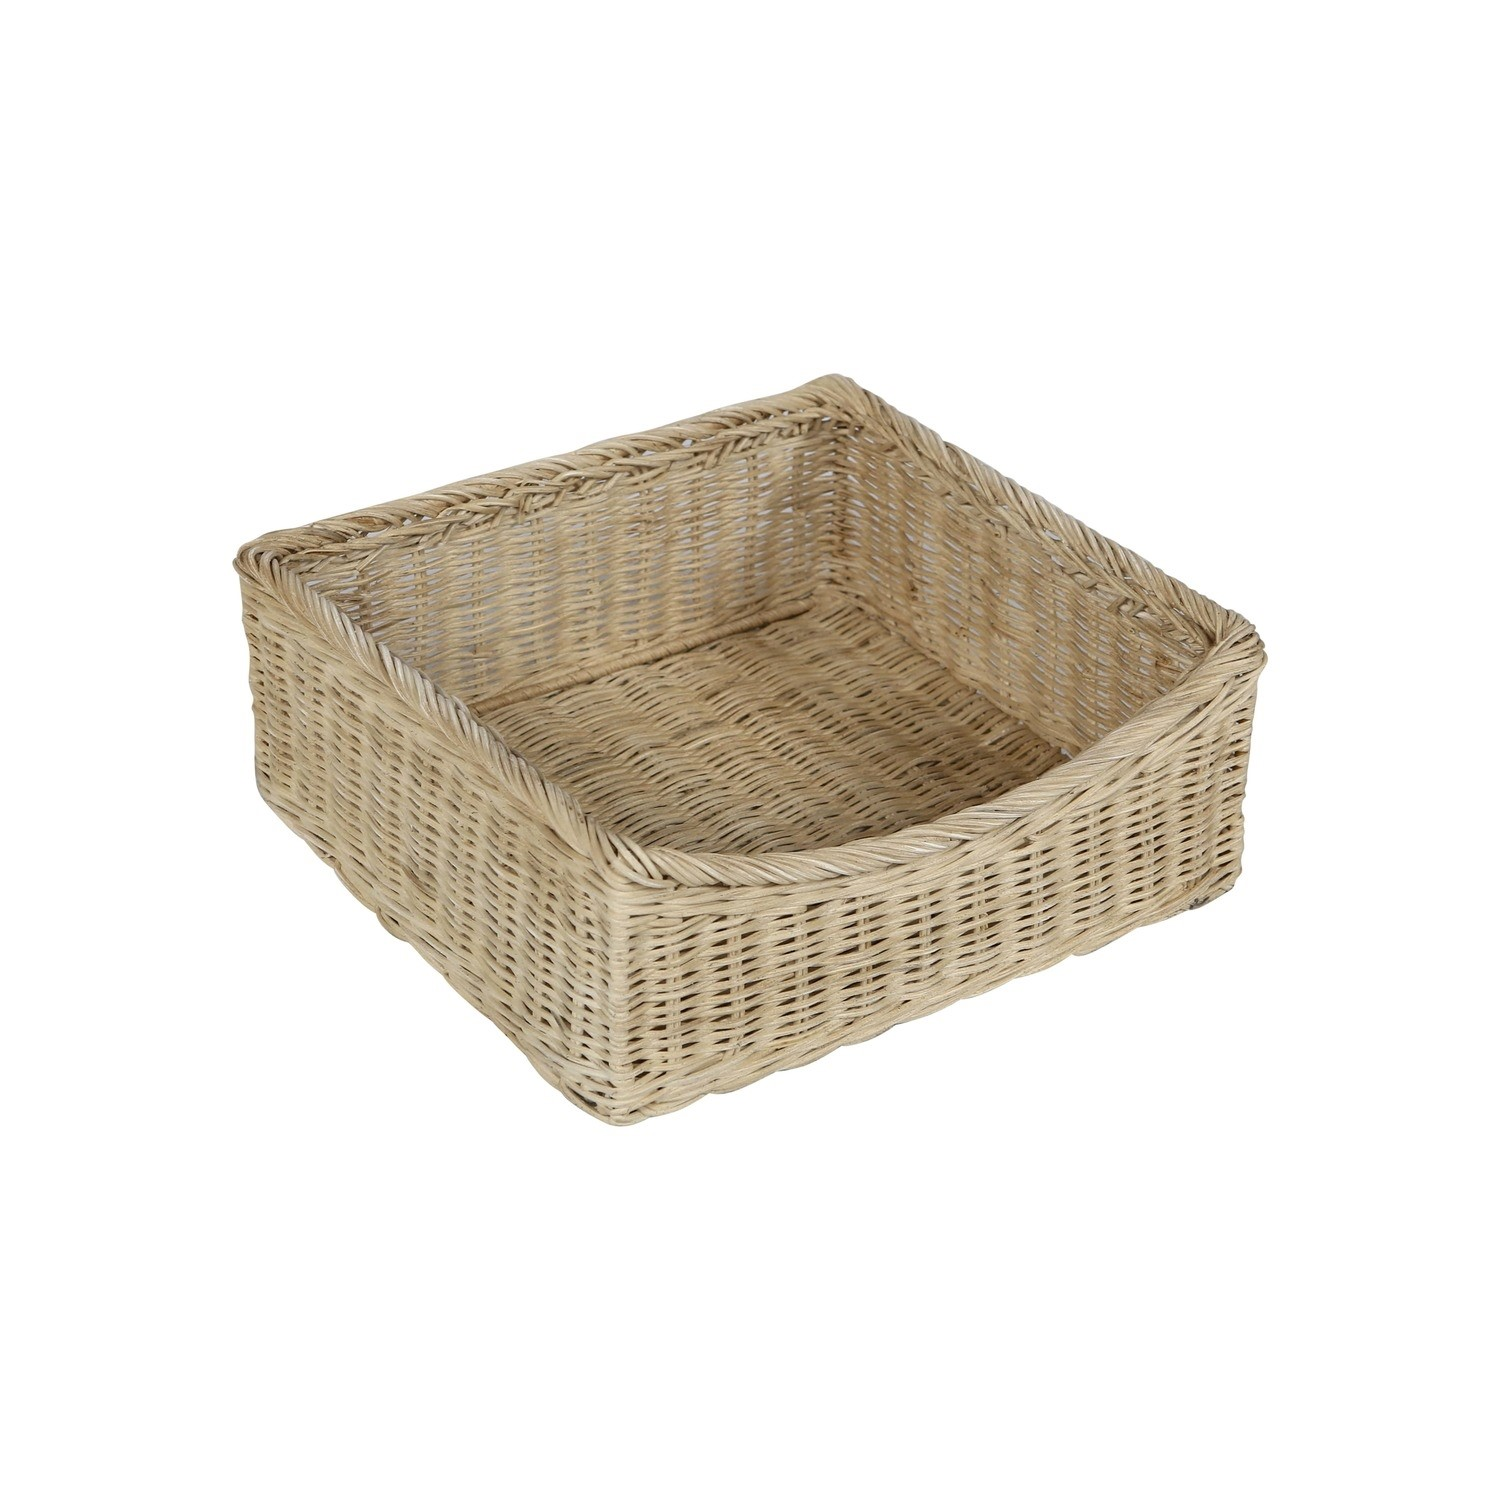 Astounding Grade A1 White Wooden Shoe Rack Storage Bench With Wicker Baskets Elms Farmhouse Onthecornerstone Fun Painted Chair Ideas Images Onthecornerstoneorg